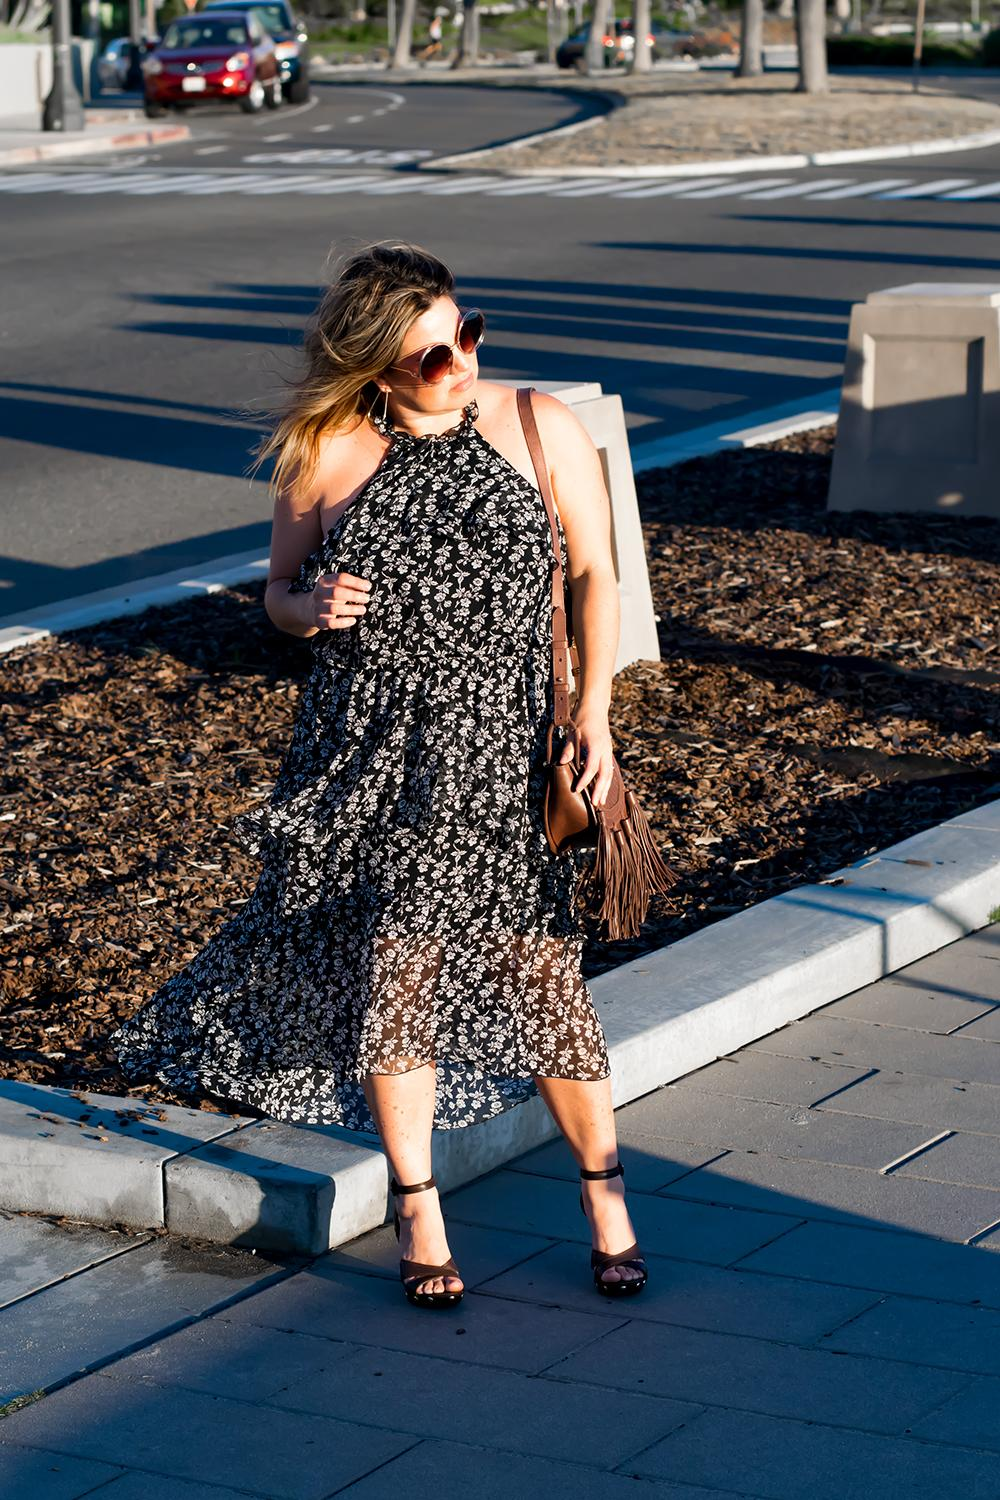 Tiered-Floral-Ruffle-Dress-The-Biggest-Summer-Trends-for-2017-Barefoot-in-LA-Fashion-Blog-Style-Ideas-Outfits-1207